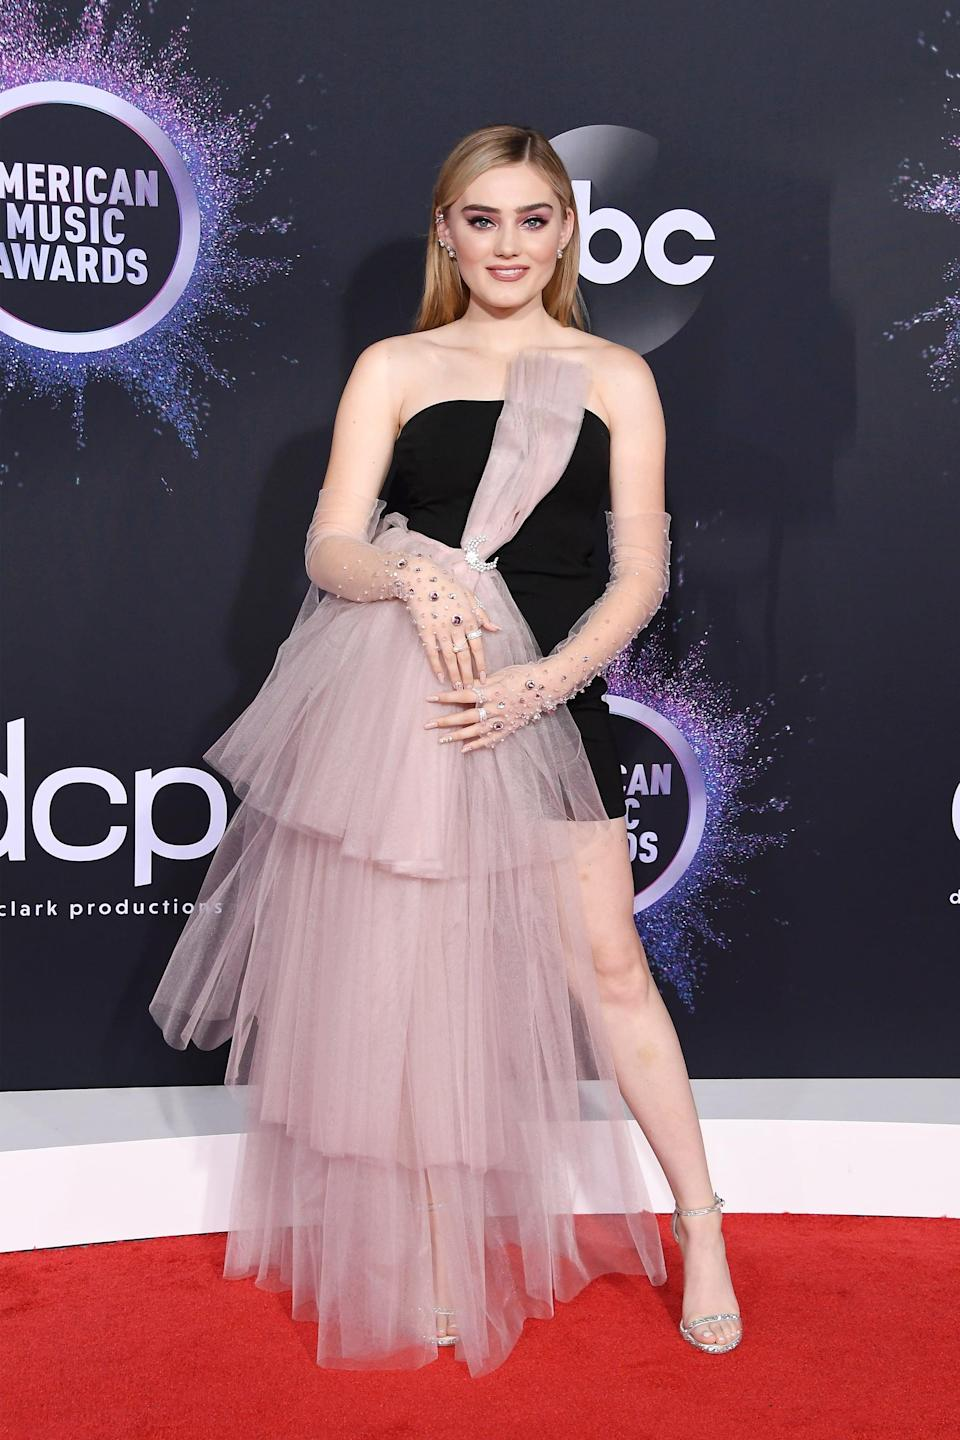 <p>Actress Meg Donnelly's dress was all kinds of stylish.</p>